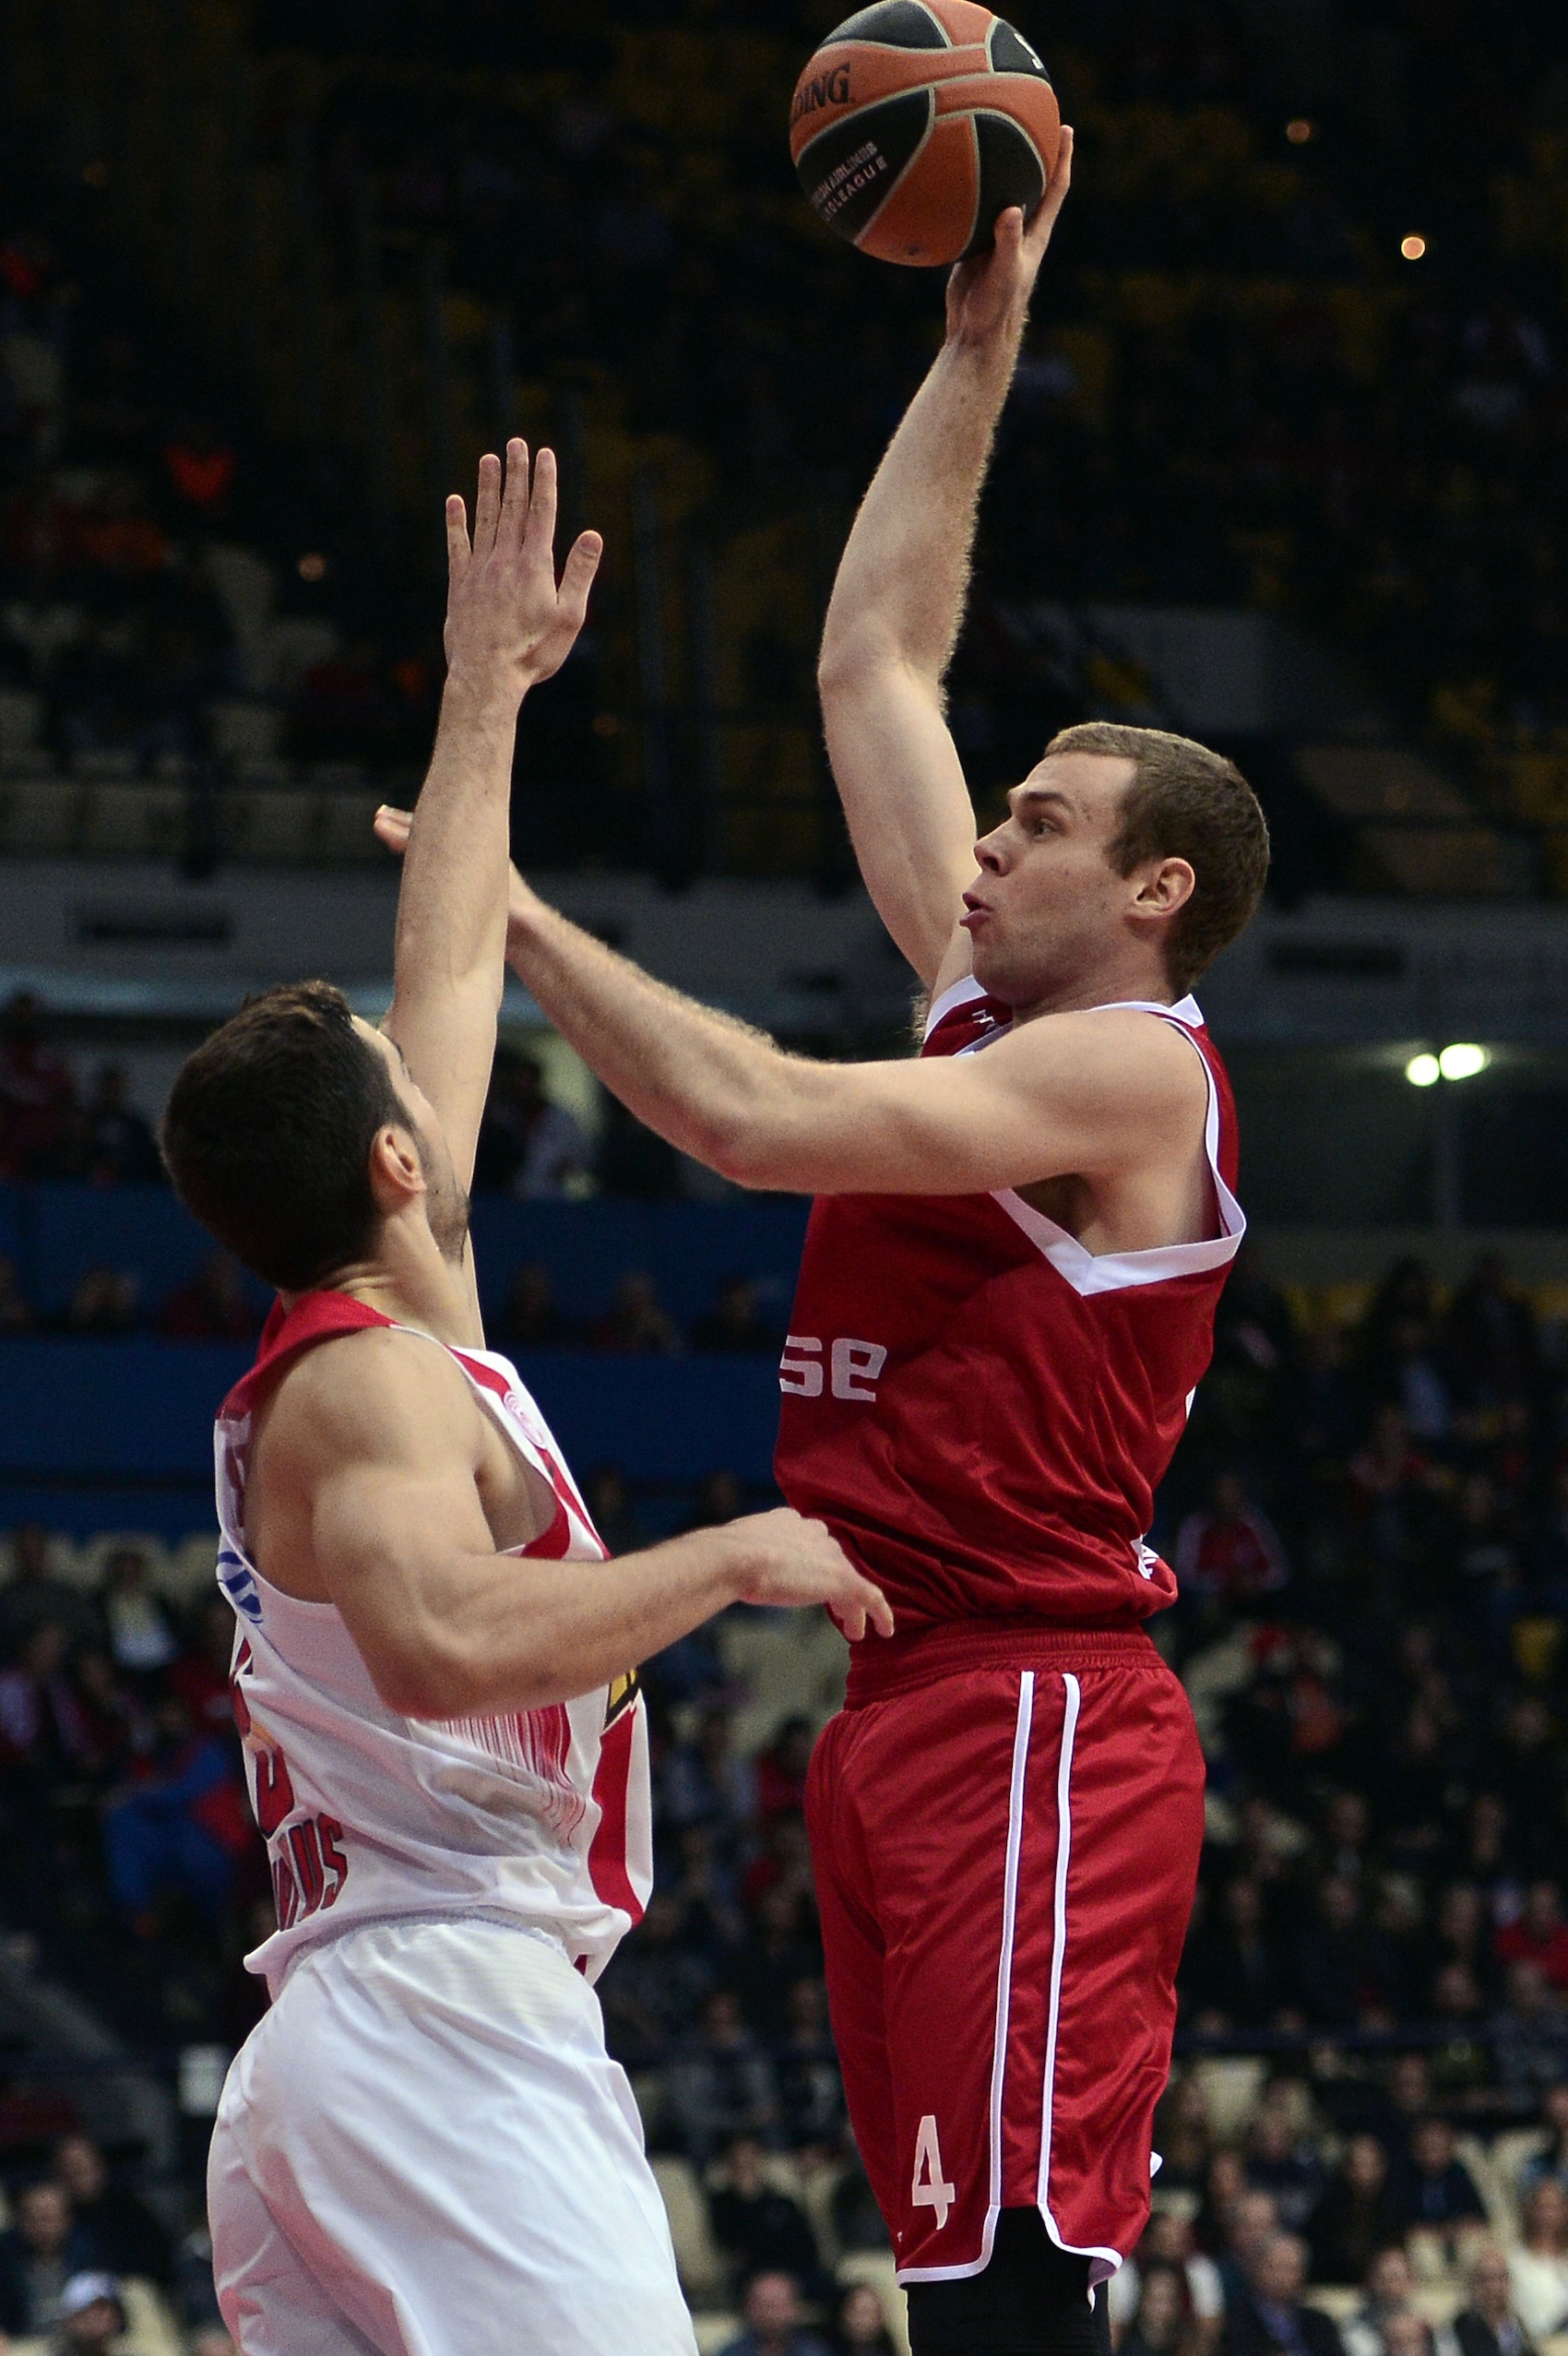 Brose Baskets Bamberg's Nicolo Melli (R) tries to score past Olympiakos Piraeus' Ioannis Papapetrou during the Euroleague Top 16 basketball match at the Peace and Friendship stadium in Piraeus near Athens on January 15, 2016. / AFP / LOUISA GOULIAMAKI (Photo credit should read LOUISA GOULIAMAKI/AFP/Getty Images)